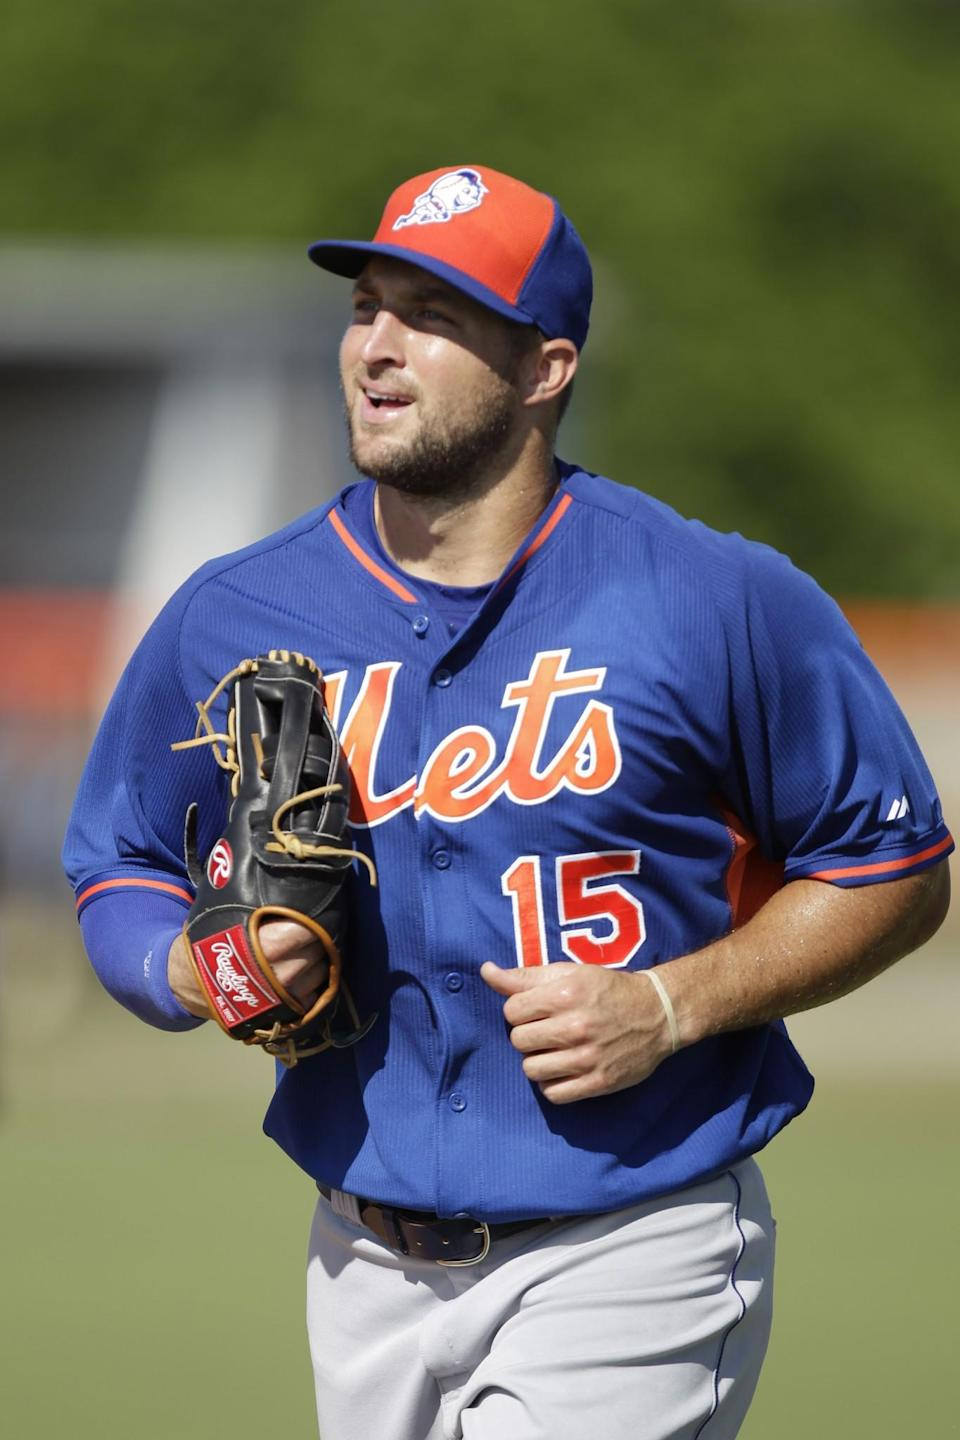 <p>Tim Tebow jogs on the field during a practice before his first instructional league baseball game for the New York Mets against the St. Louis Cardinals instructional club Wednesday, Sept. 28, 2016, in Port St. Lucie, Fla. (AP Photo/Luis M. Alvarez) </p>